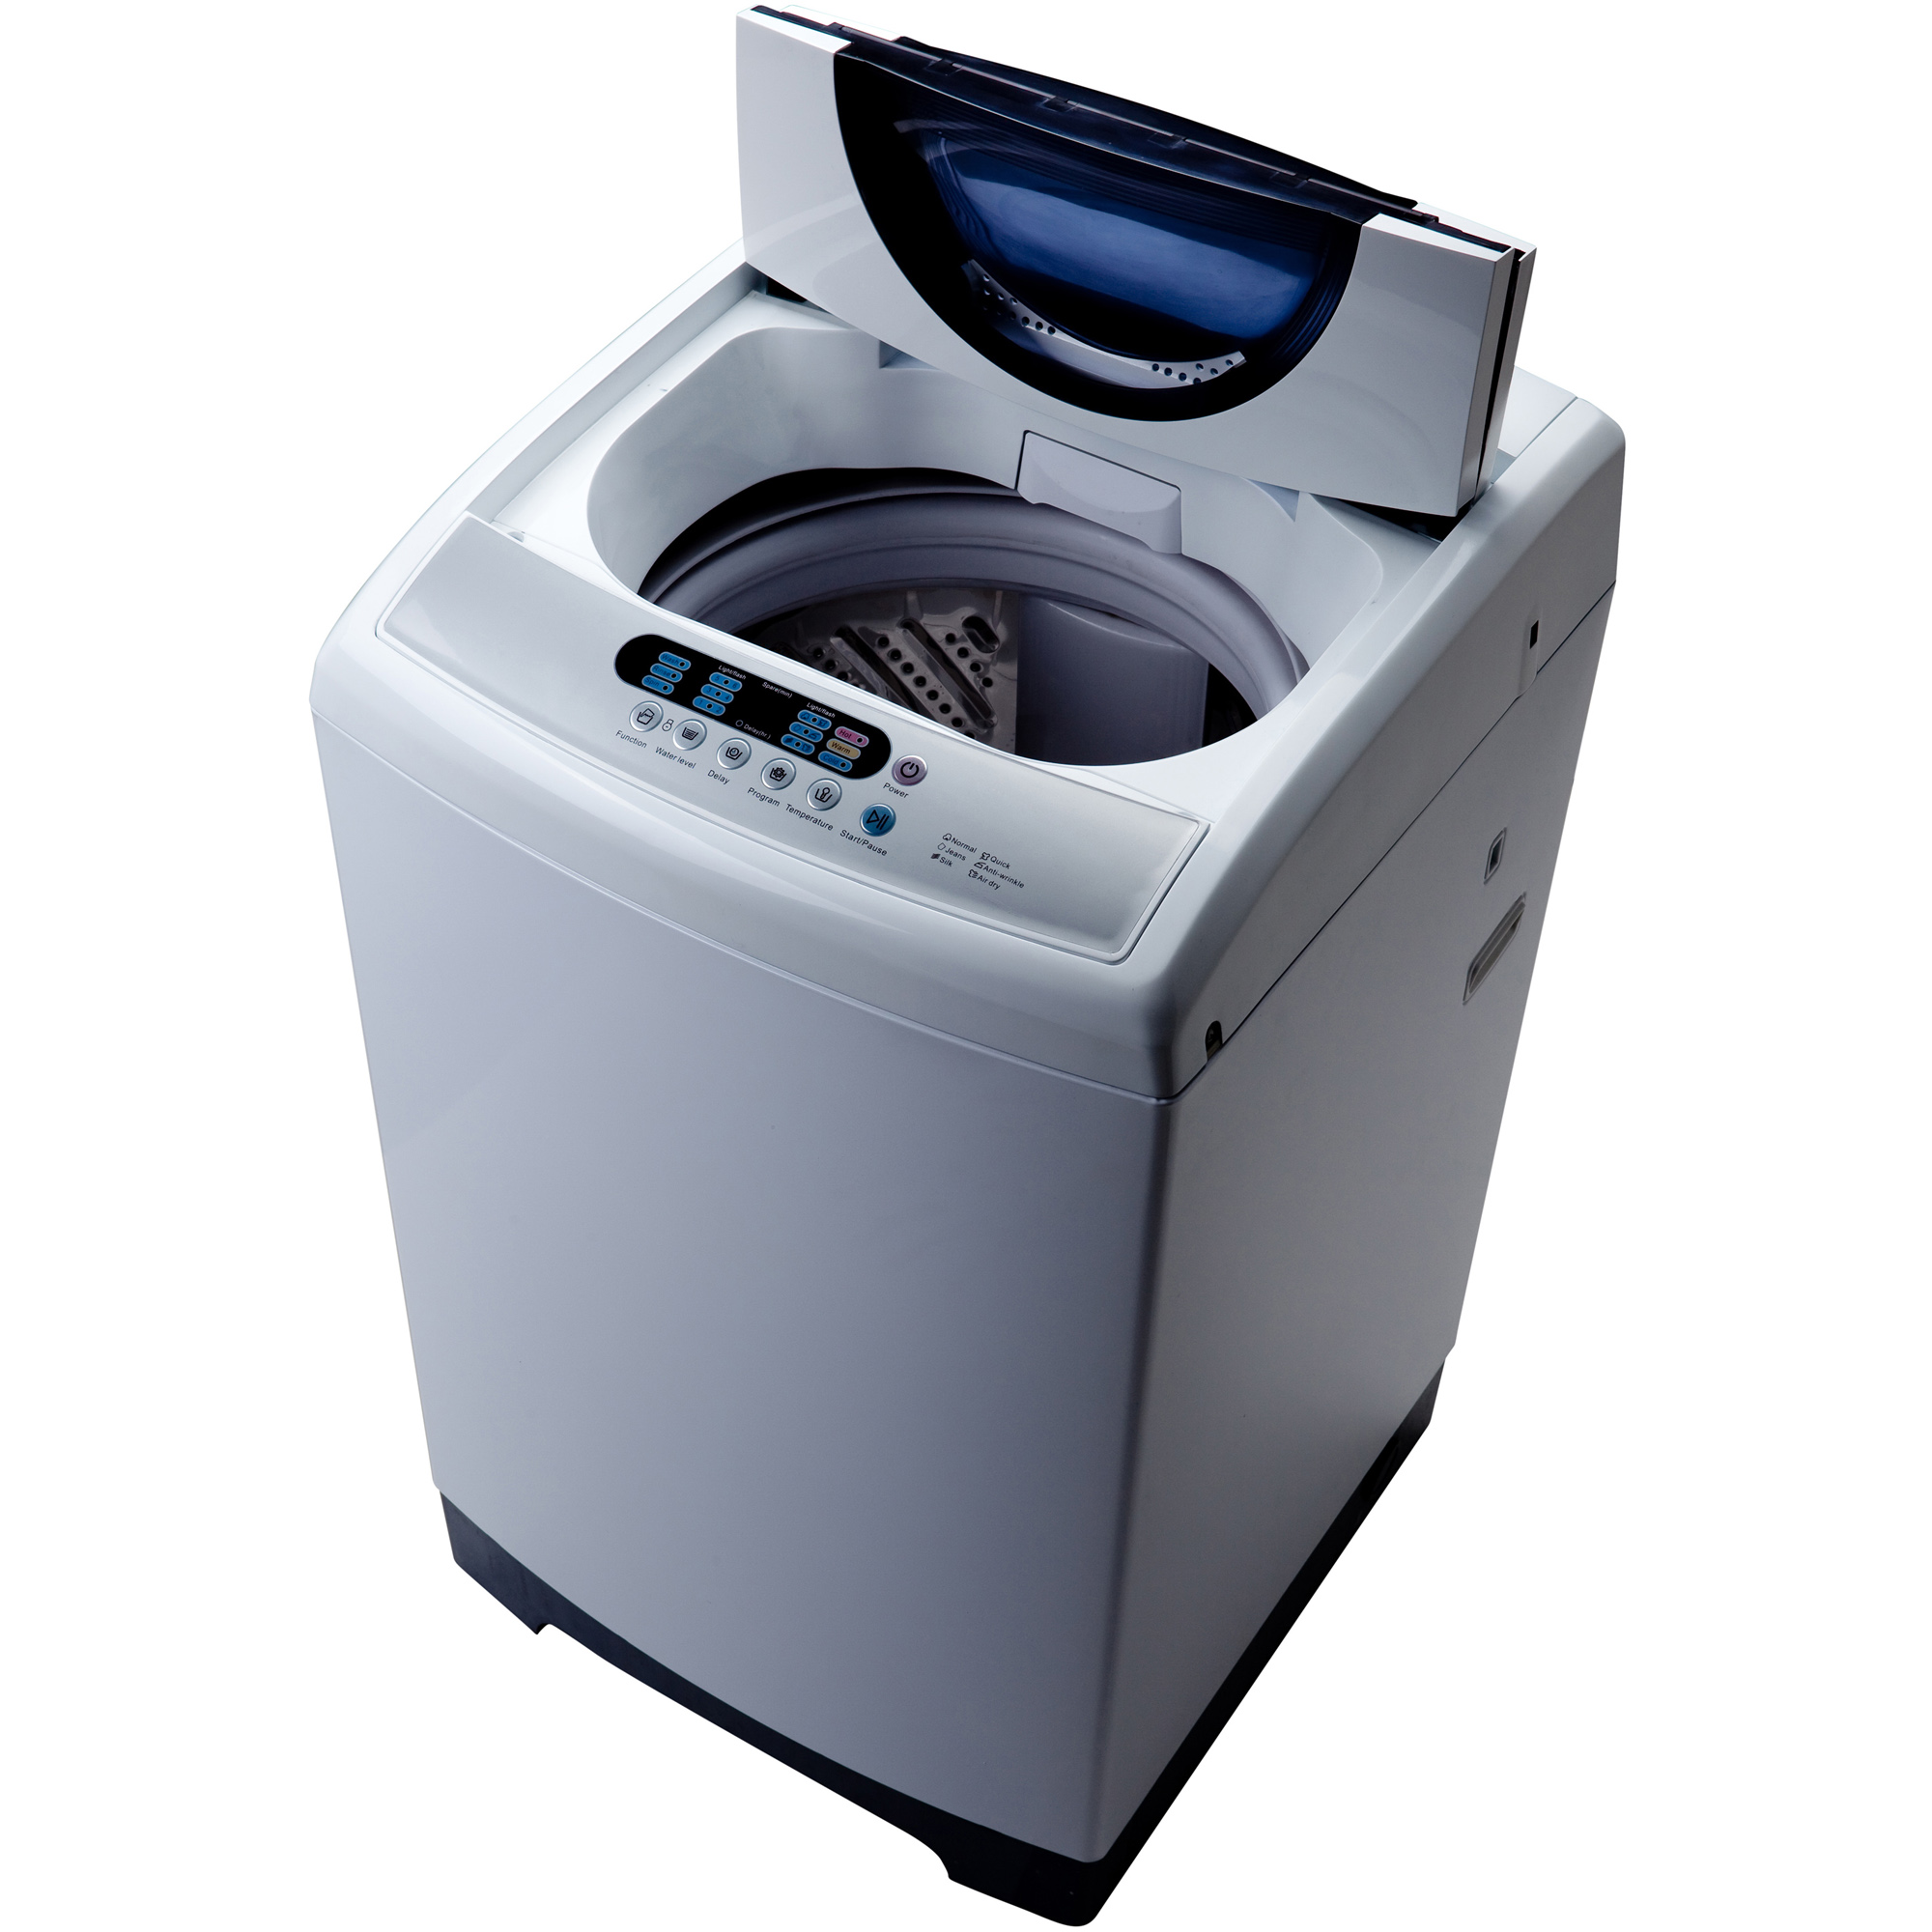 Top 15 Waterproofing Washing Machine For Outdoors, Smalll Washing ...